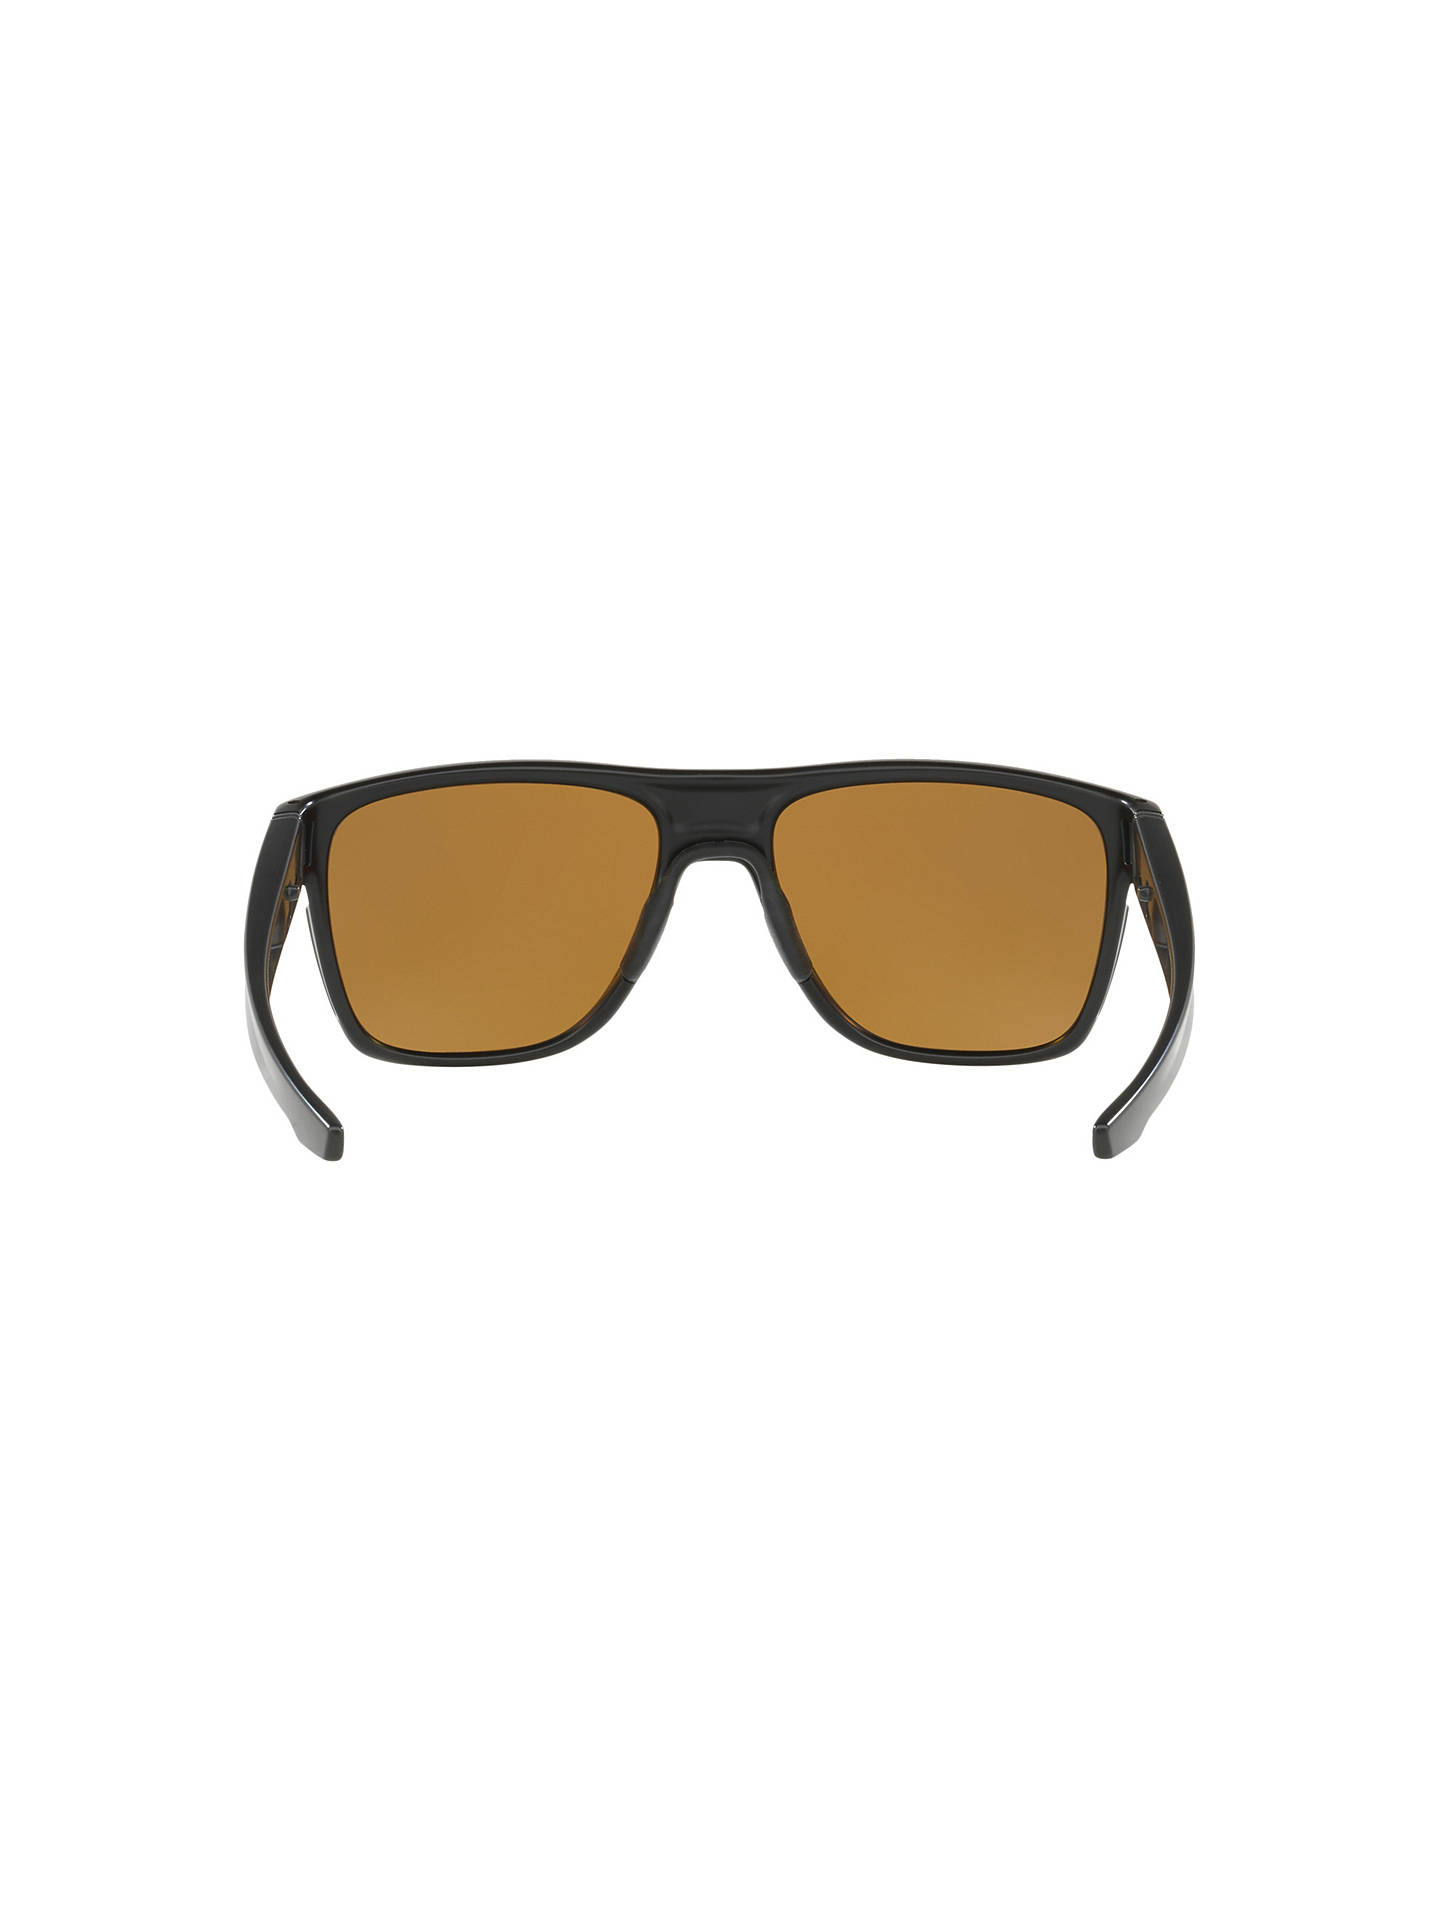 BuyOakley OO9360 Polarised Crossrange XL Prizm Square Sunglasses, Matte Black/Brown Online at johnlewis.com